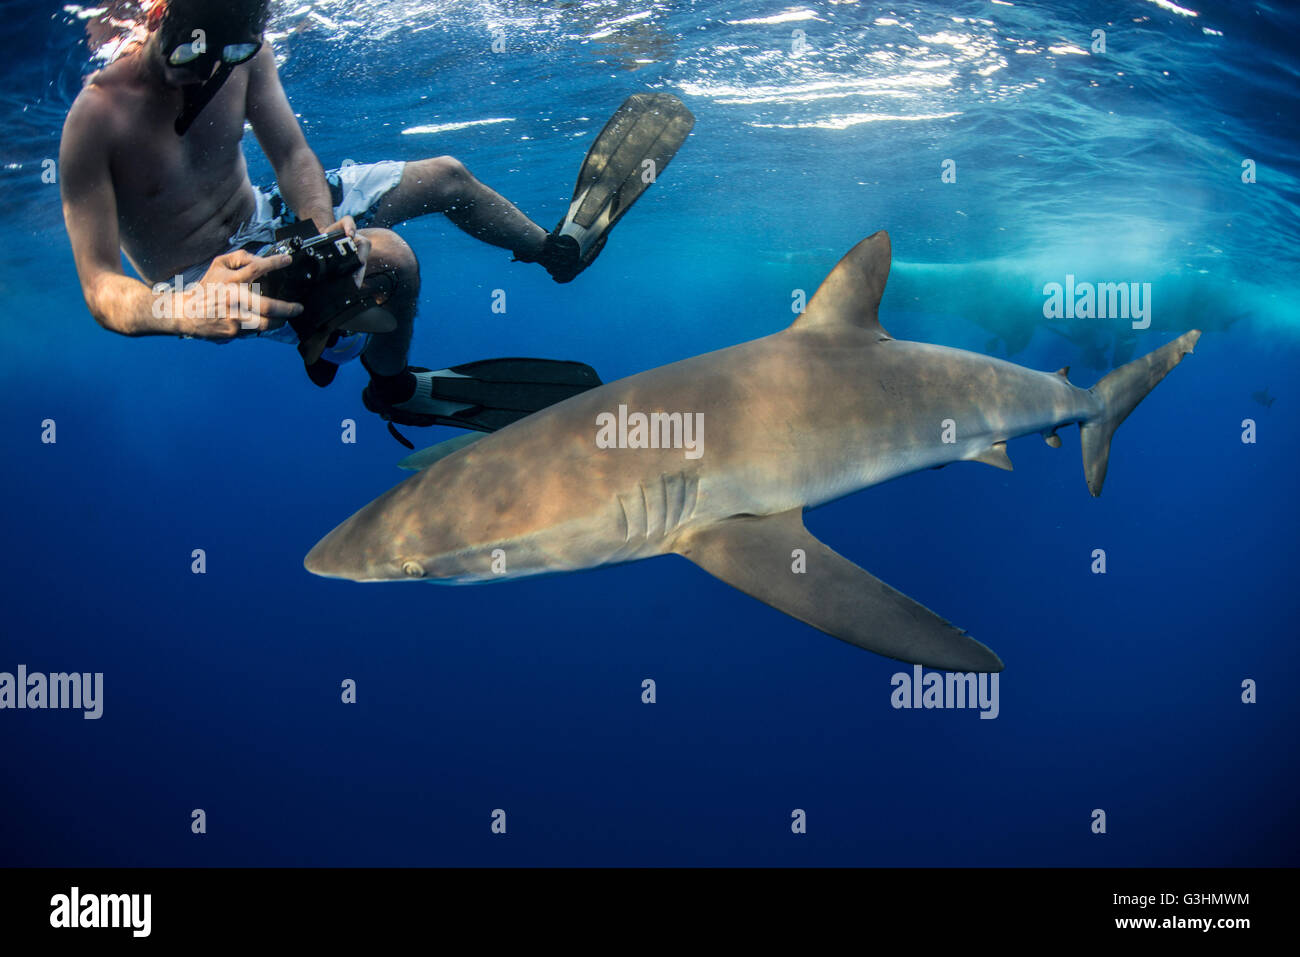 Snorkeler photographier un requin soyeux (Carcharhinus falciformis), Roca Partida, Colima, Mexique Photo Stock